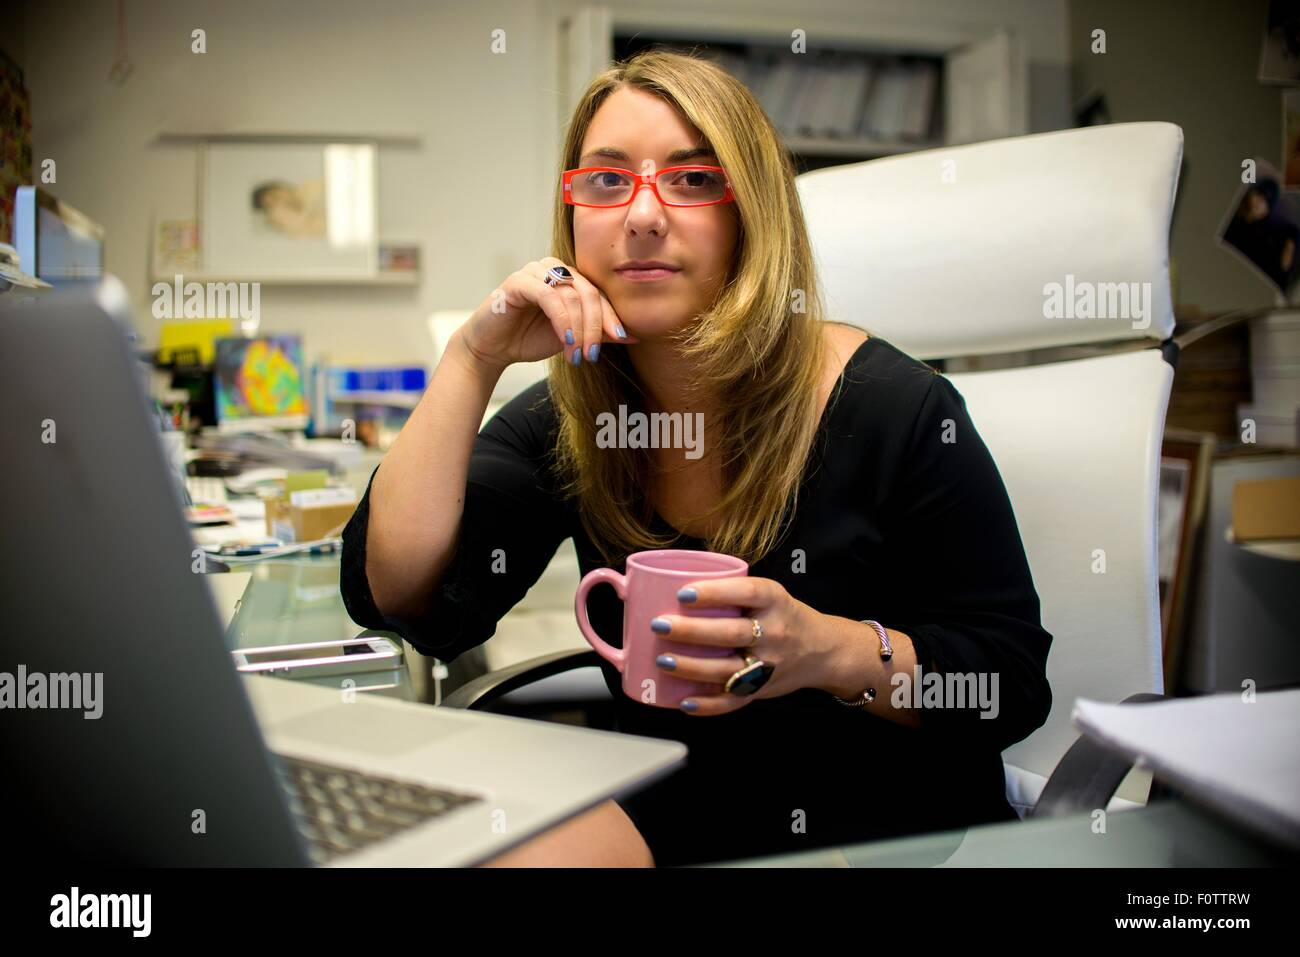 Portrait of young woman in office, sitting at desk, holding coffee cup - Stock Image